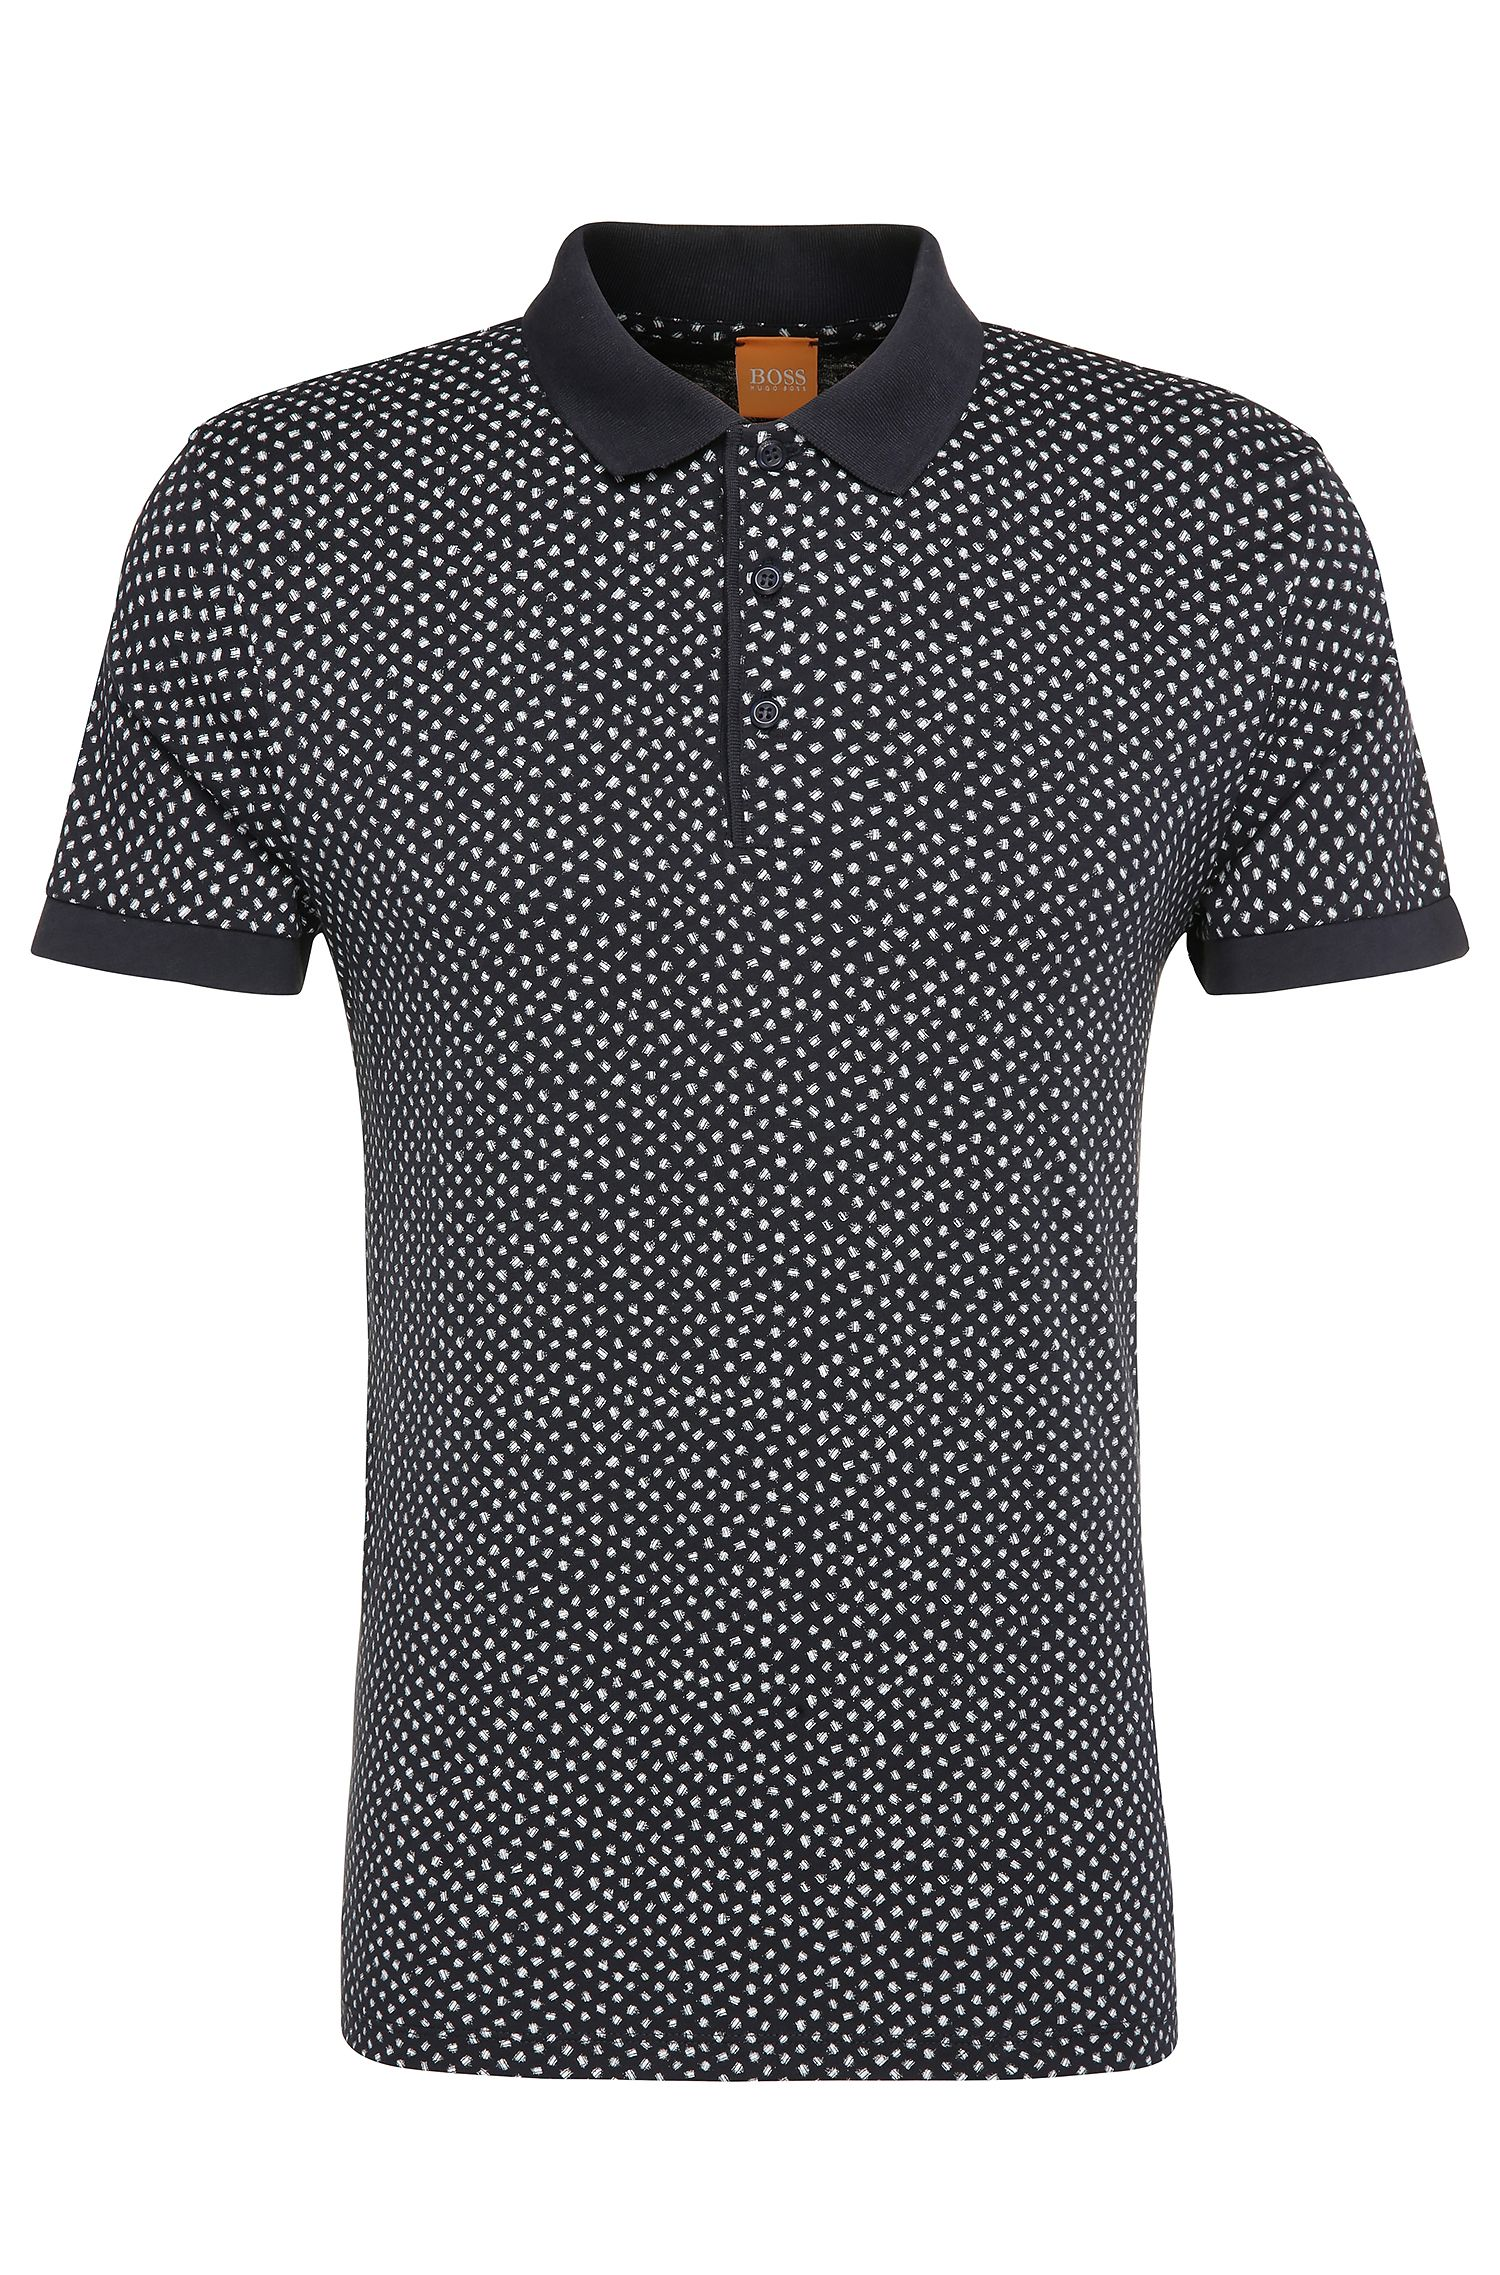 'Palex' | Regular Fit, Cotton Printed Polo